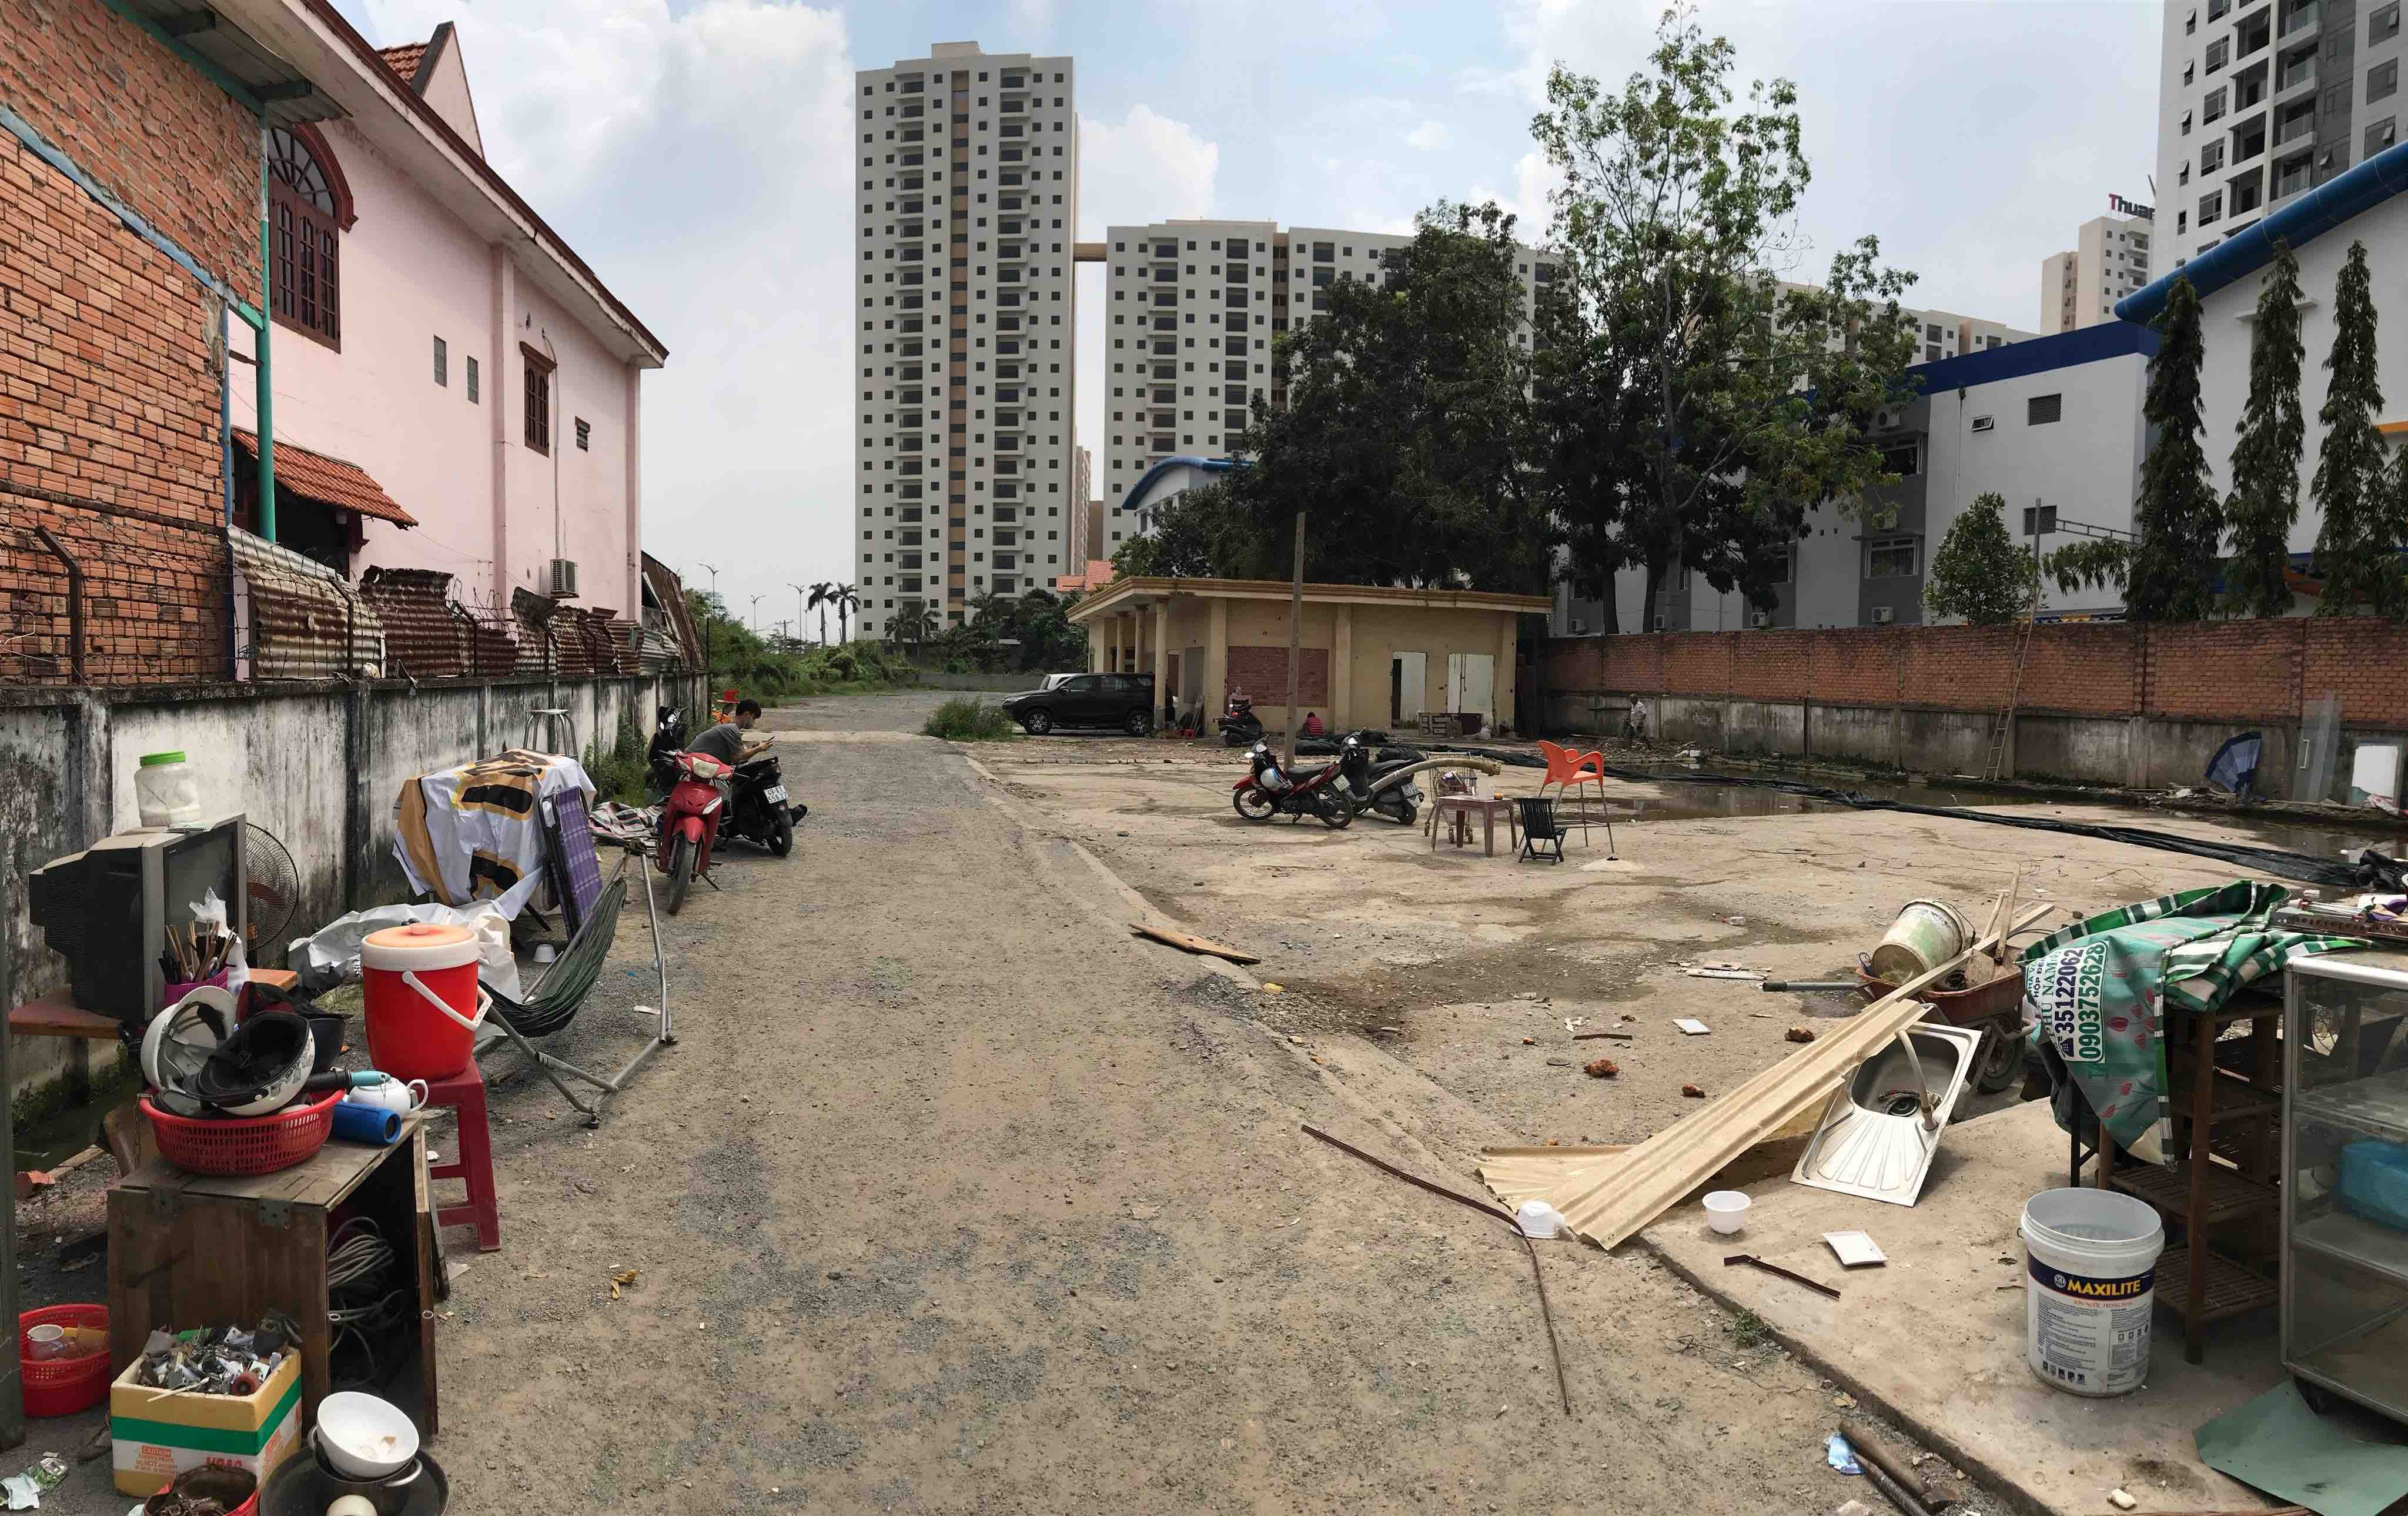 Land For Rent in Luong Dinh Cua Street, District 2